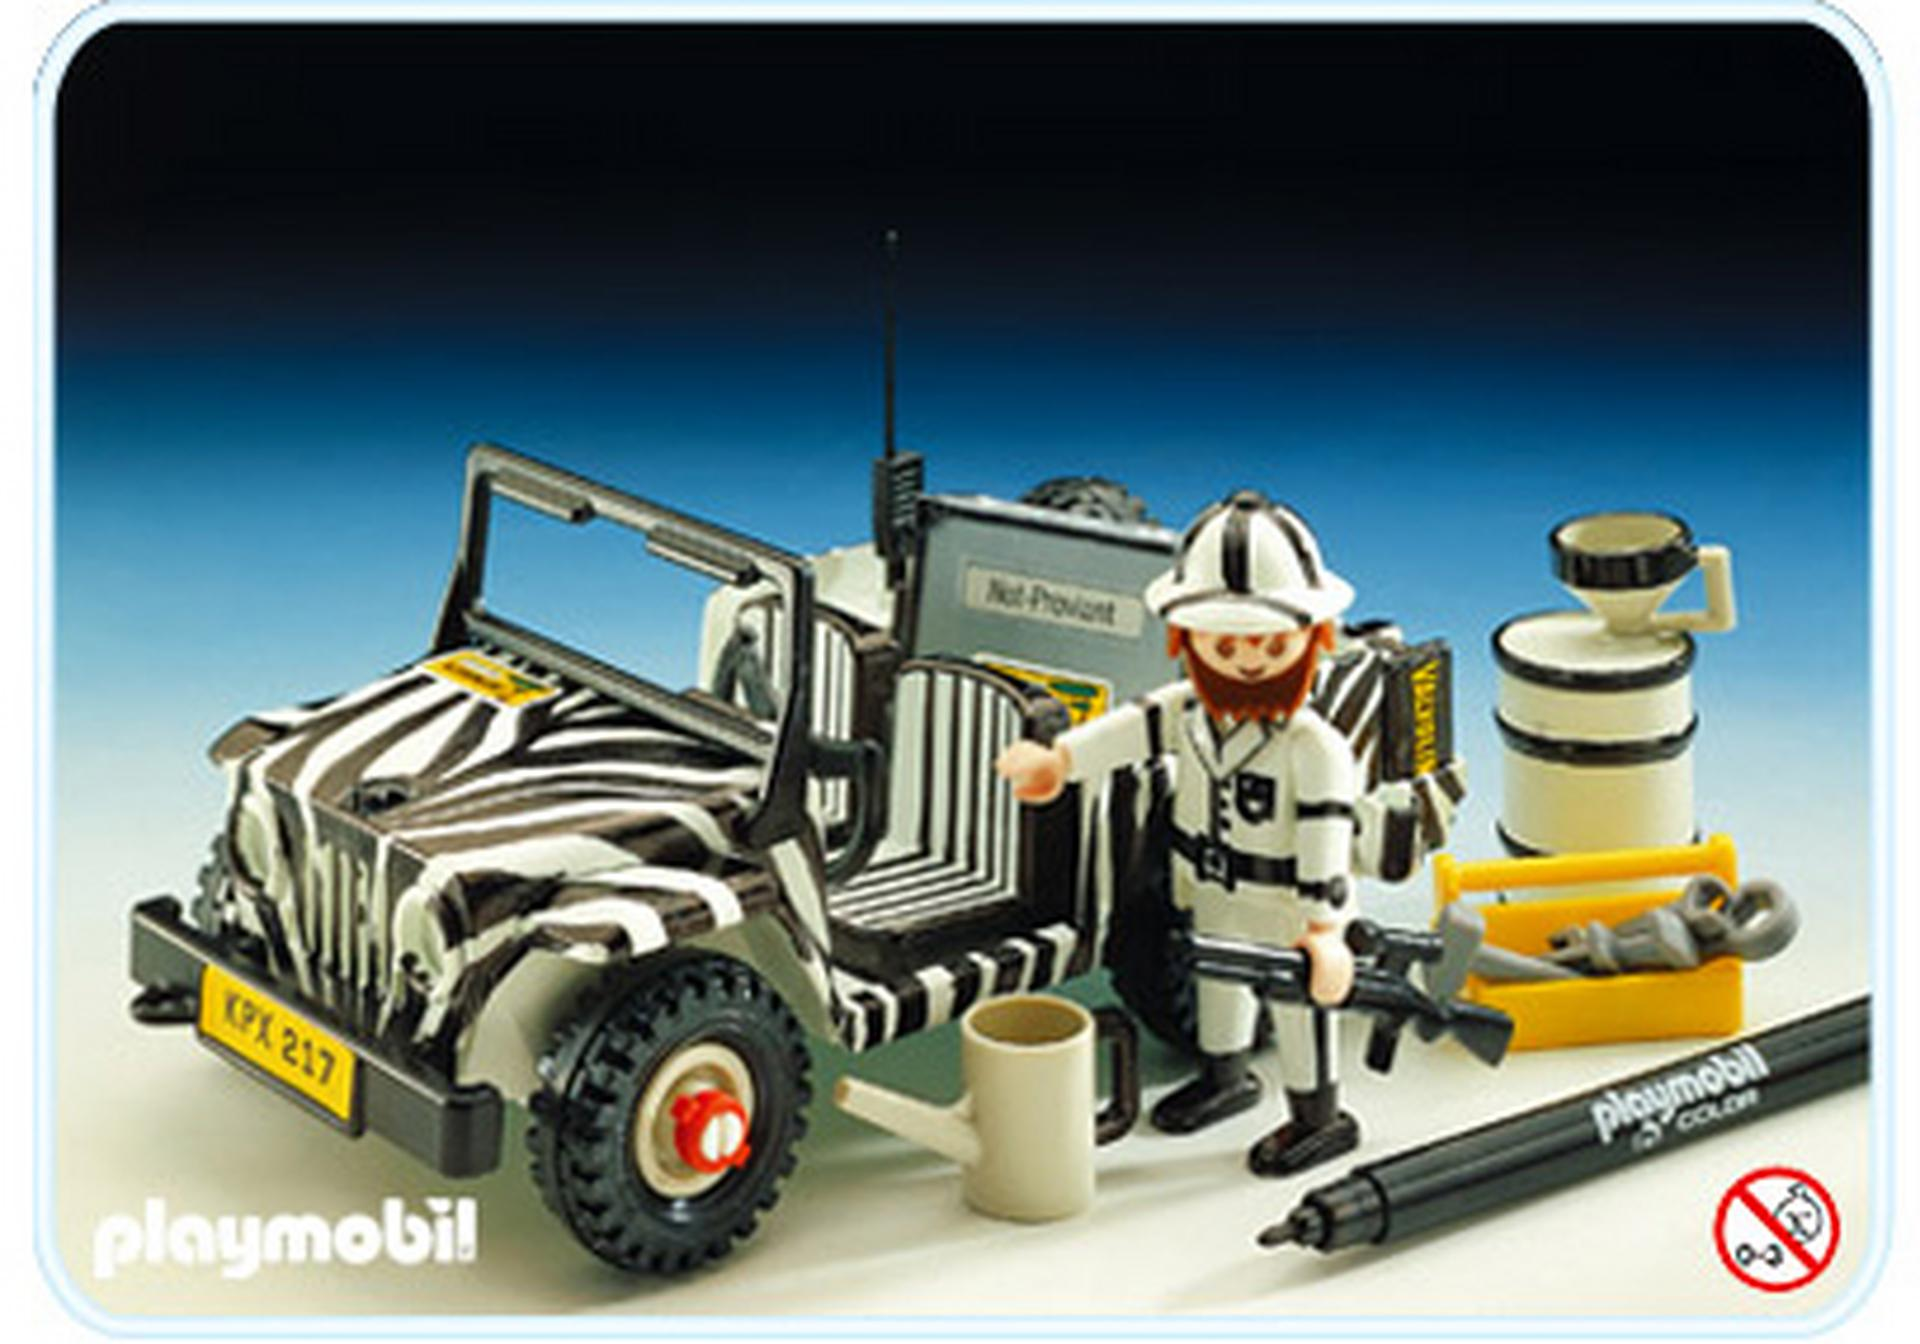 safari jeep 3679 a playmobil deutschland. Black Bedroom Furniture Sets. Home Design Ideas